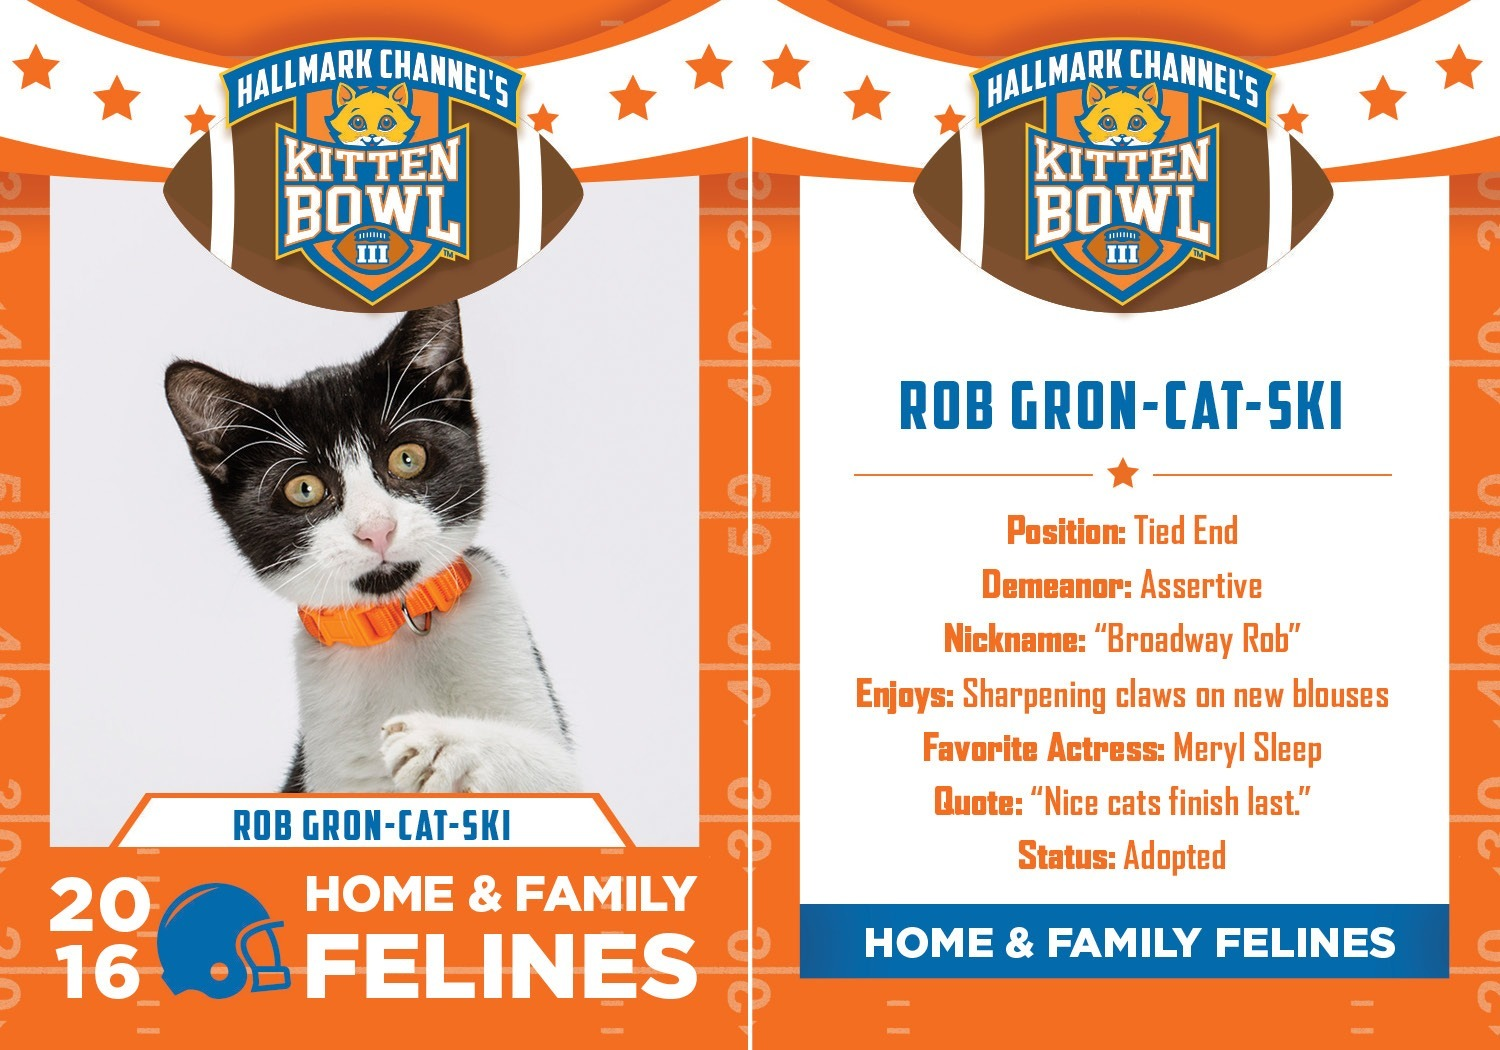 rob gronkowski kitten bowl III images